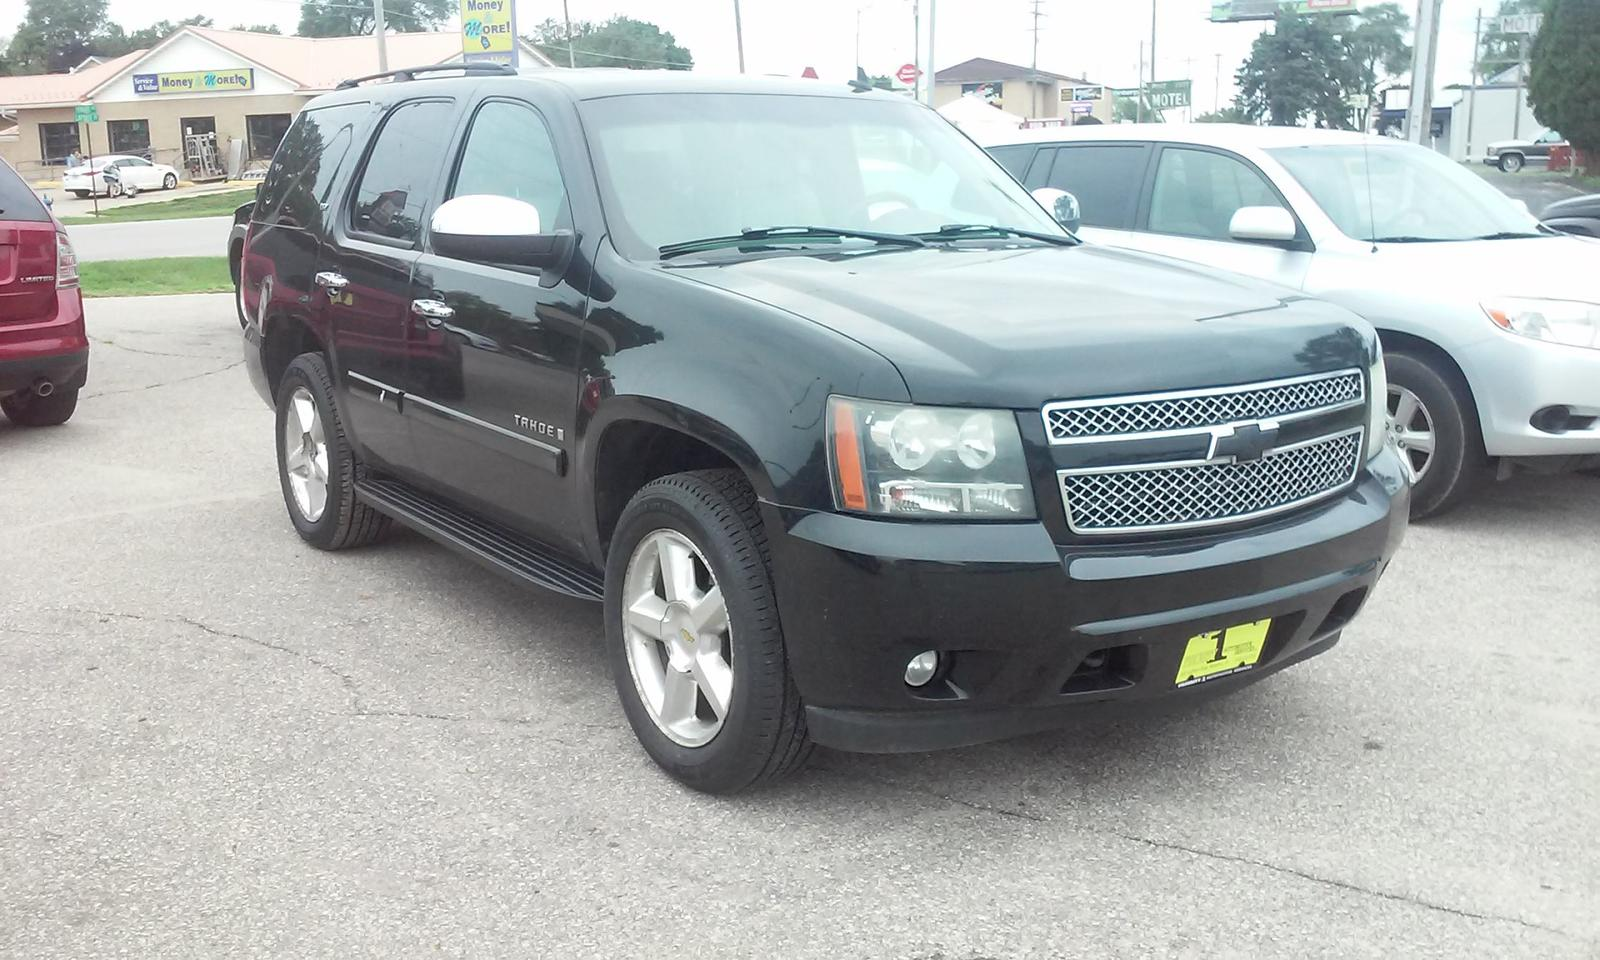 suv white down lt sporty full sold inventory tahoe w ls chevrolet financed size